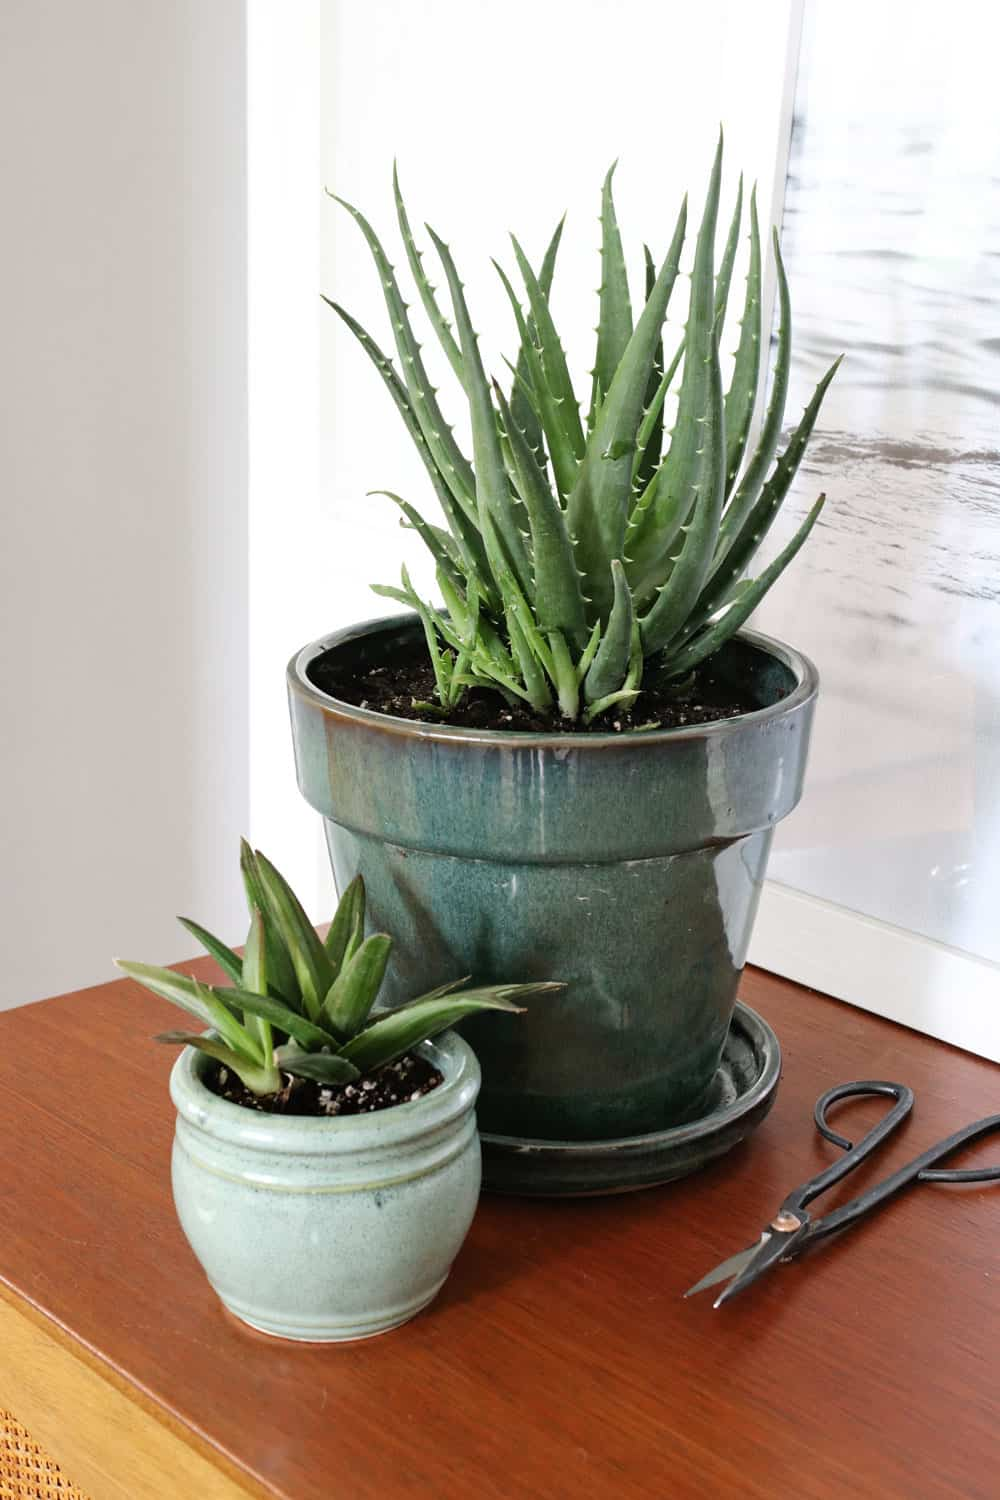 How to Harvest + Use Aloe Vera Plants